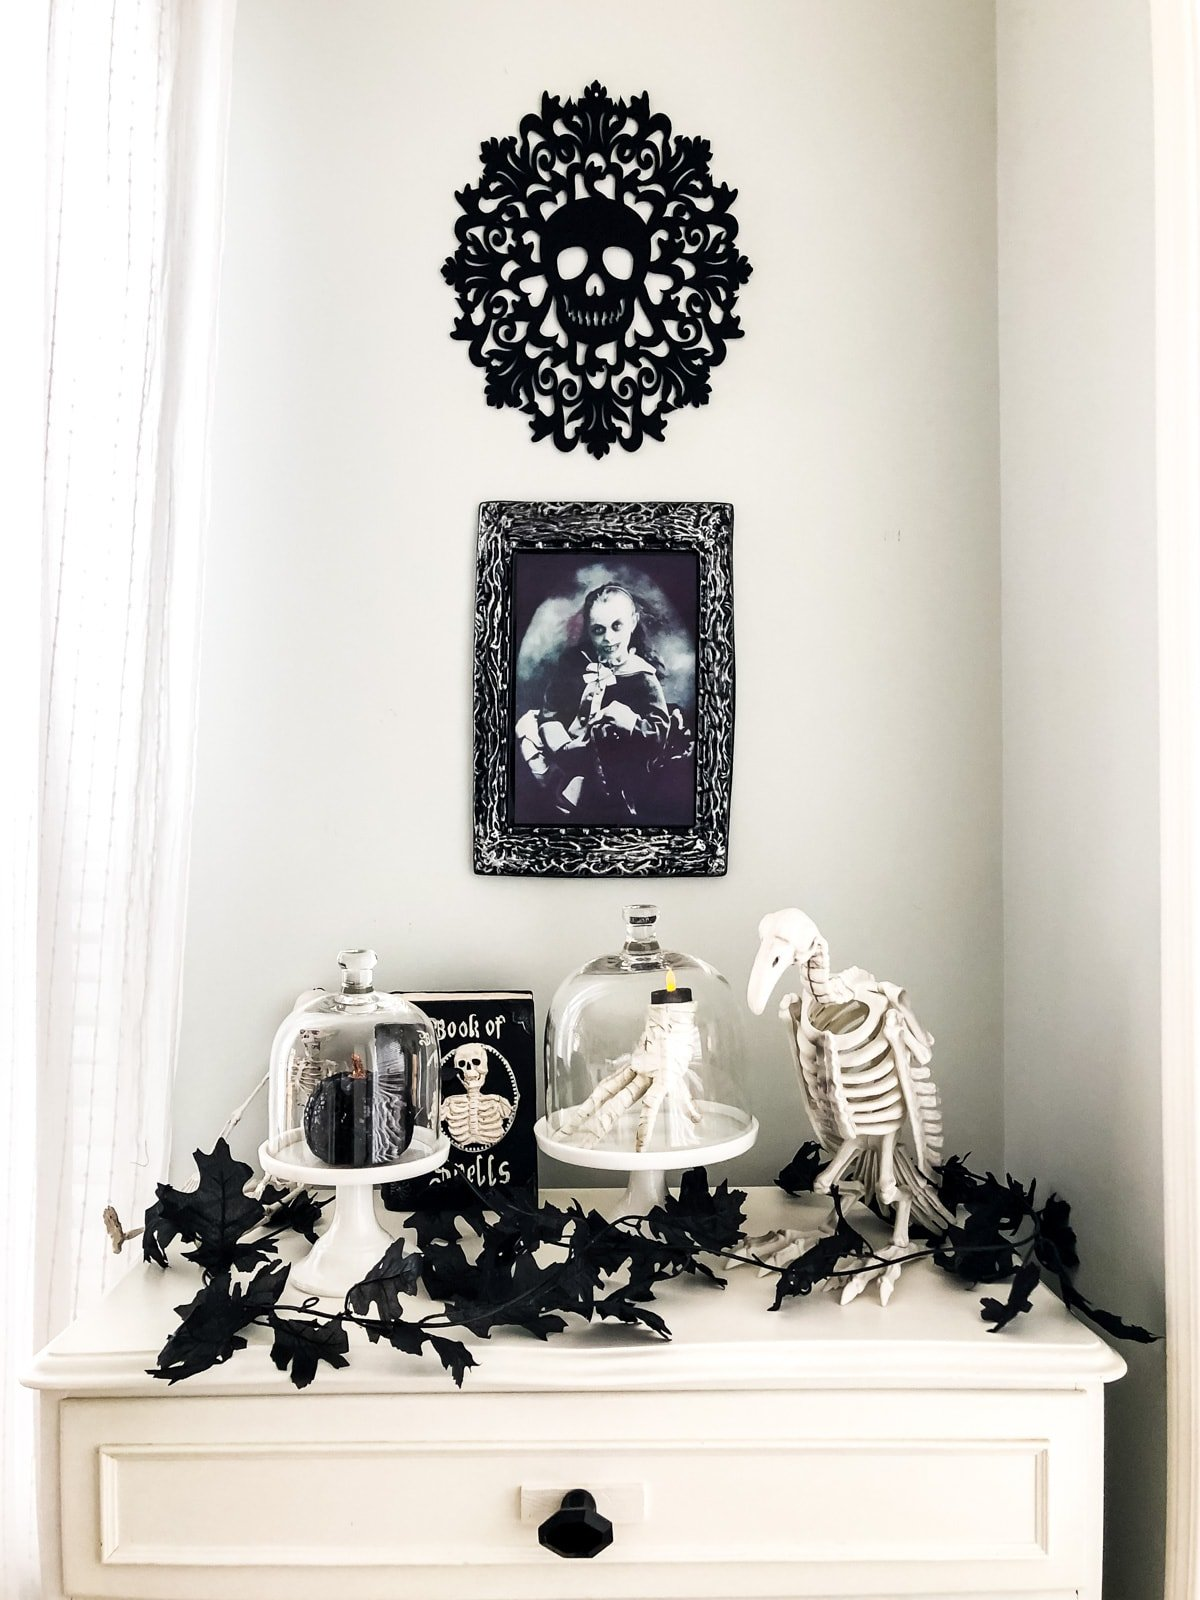 A Halloween vignette of skeletons and Halloween art